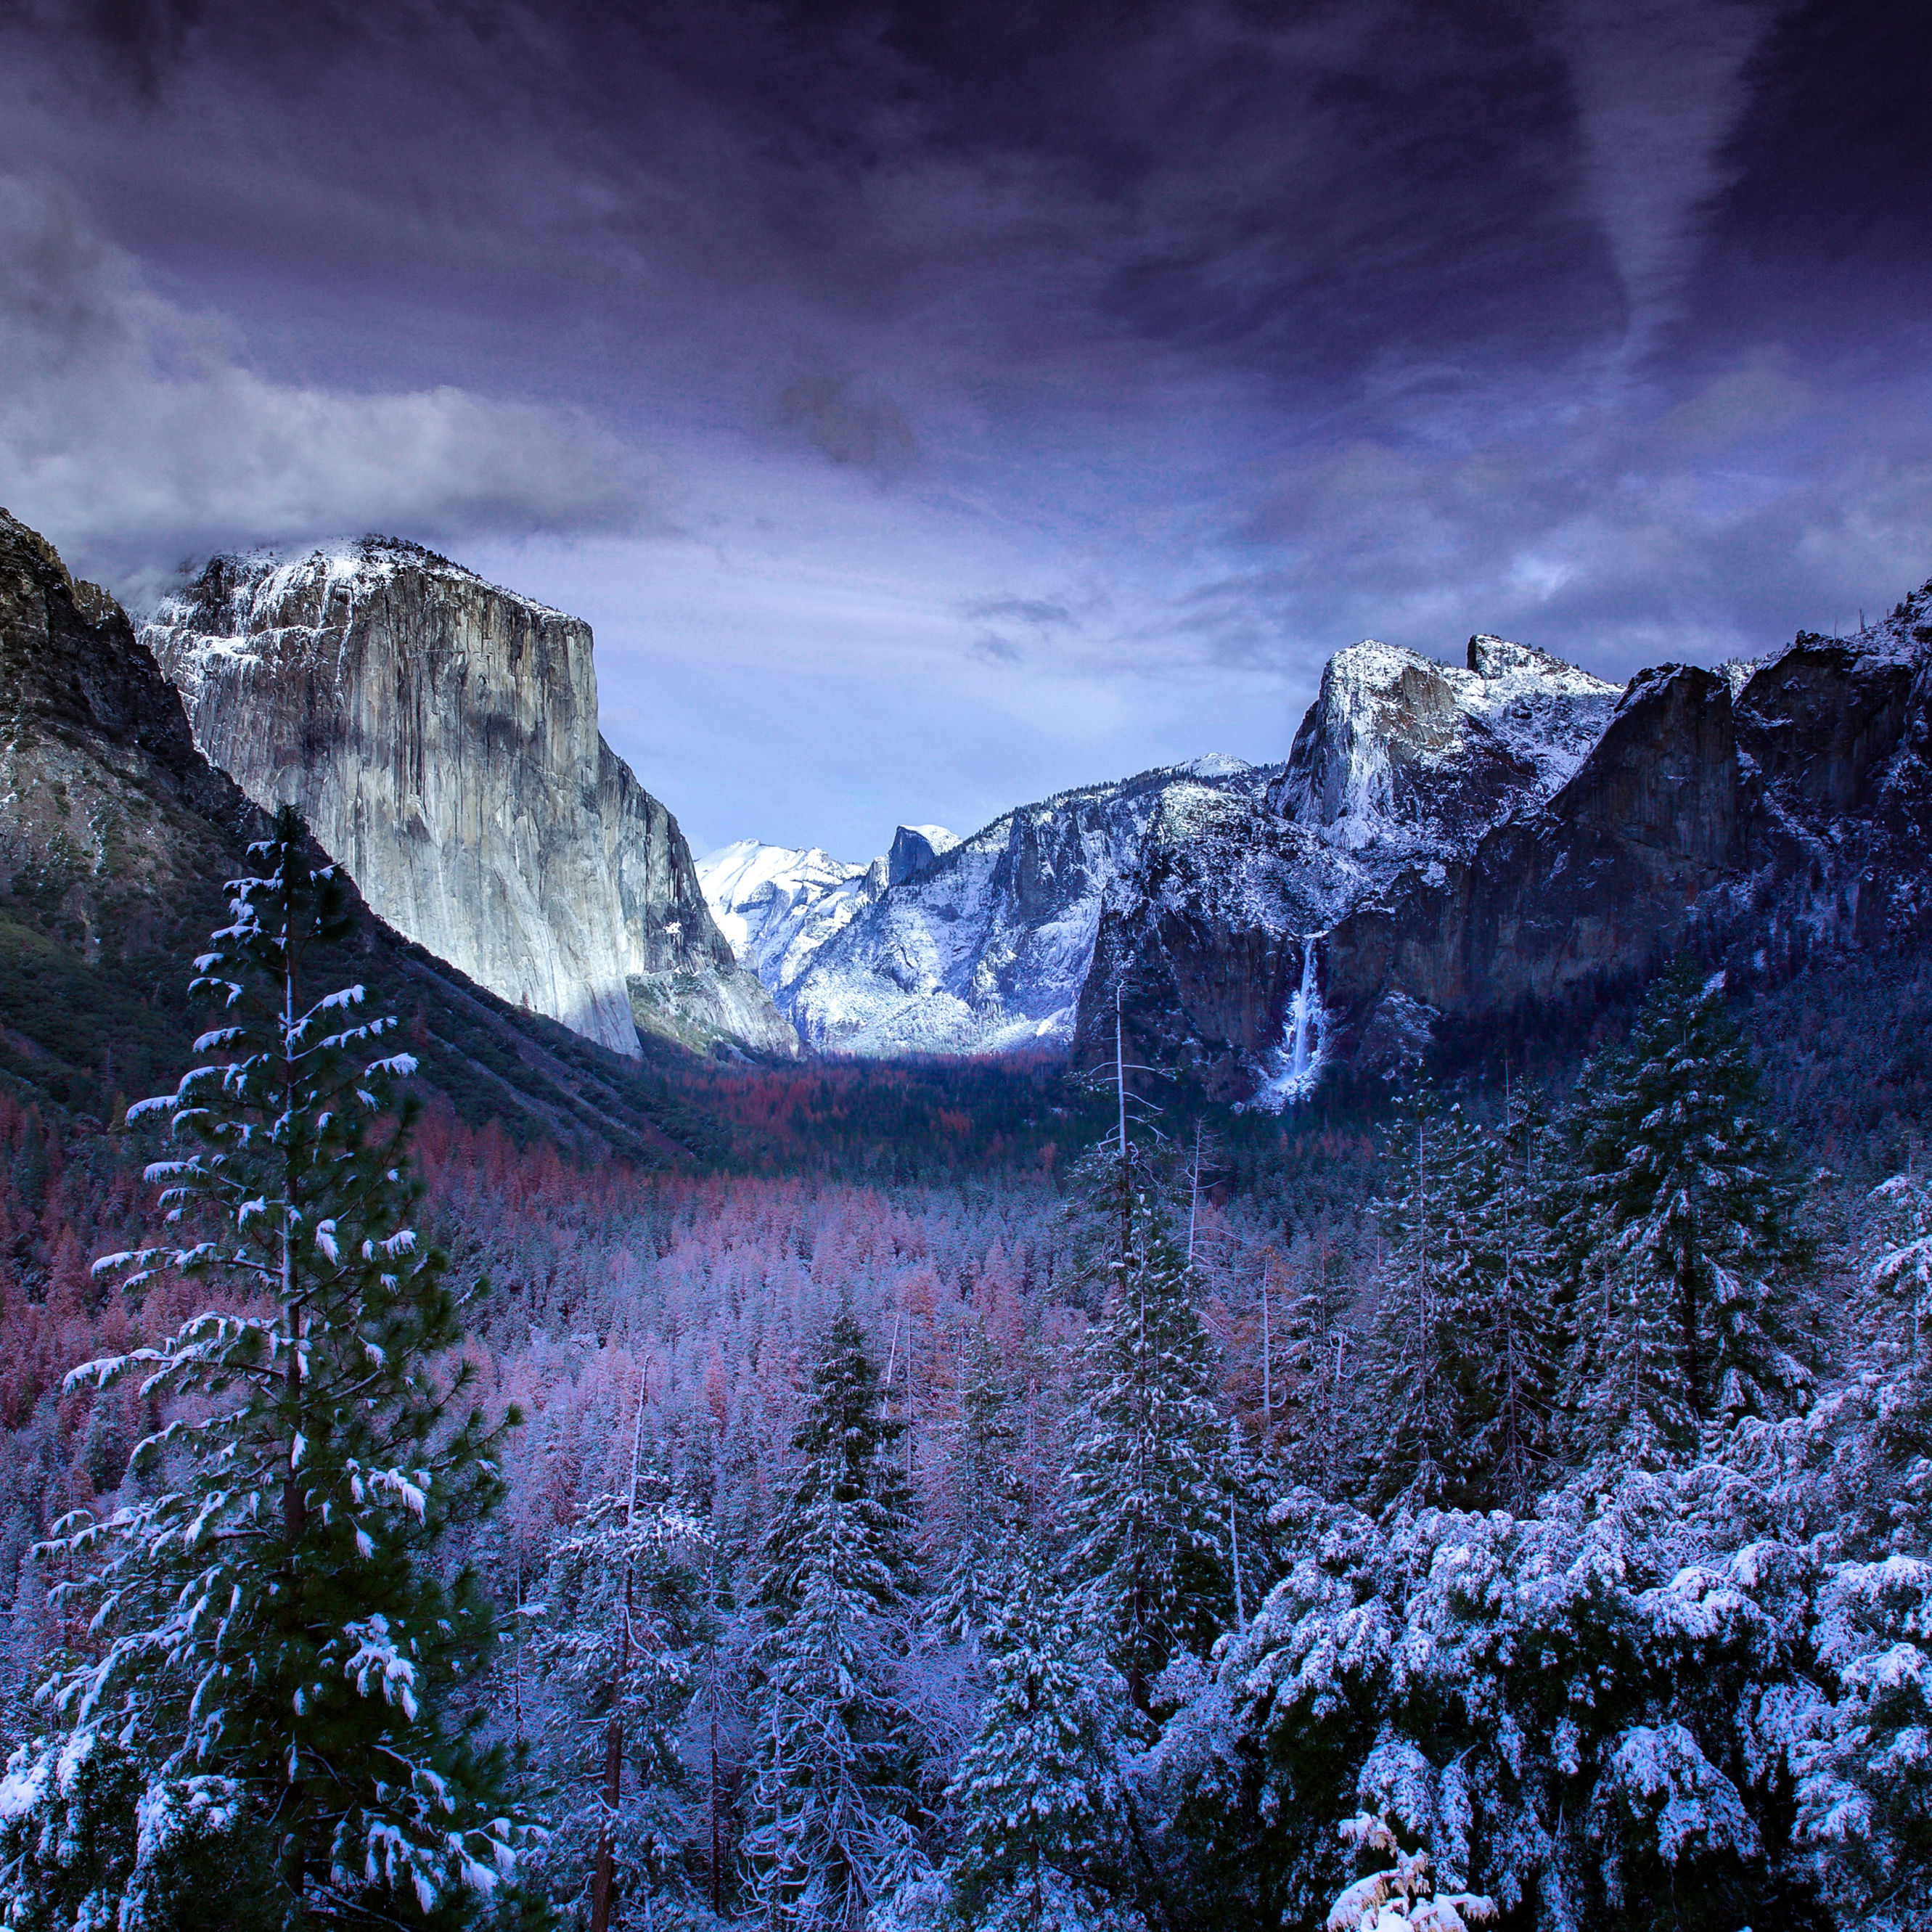 Wallpaper Weekends Yosemite Tunnel View For Mac Ipad Iphone And Apple Watch